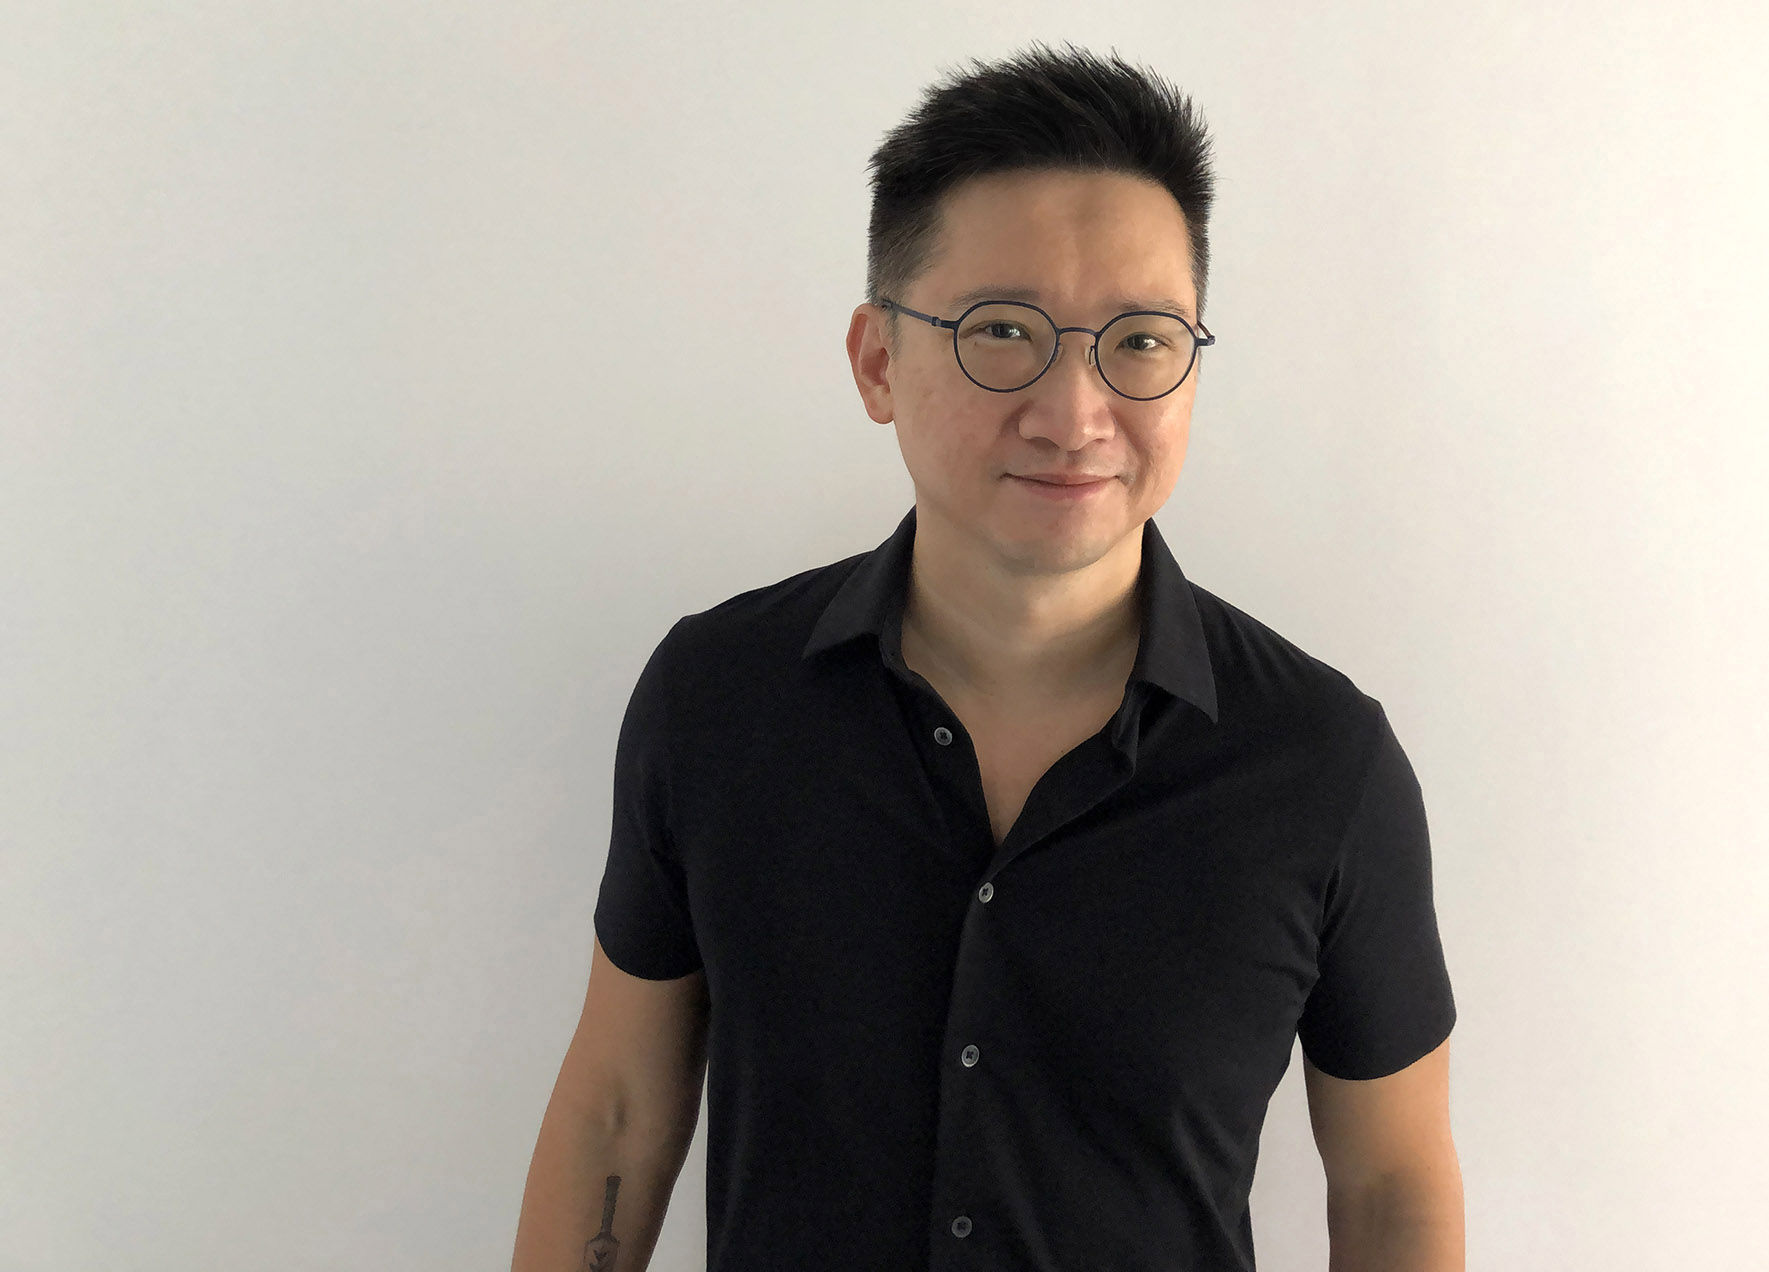 INTERVIEW WITH DIRECTOR ERVIN HAN